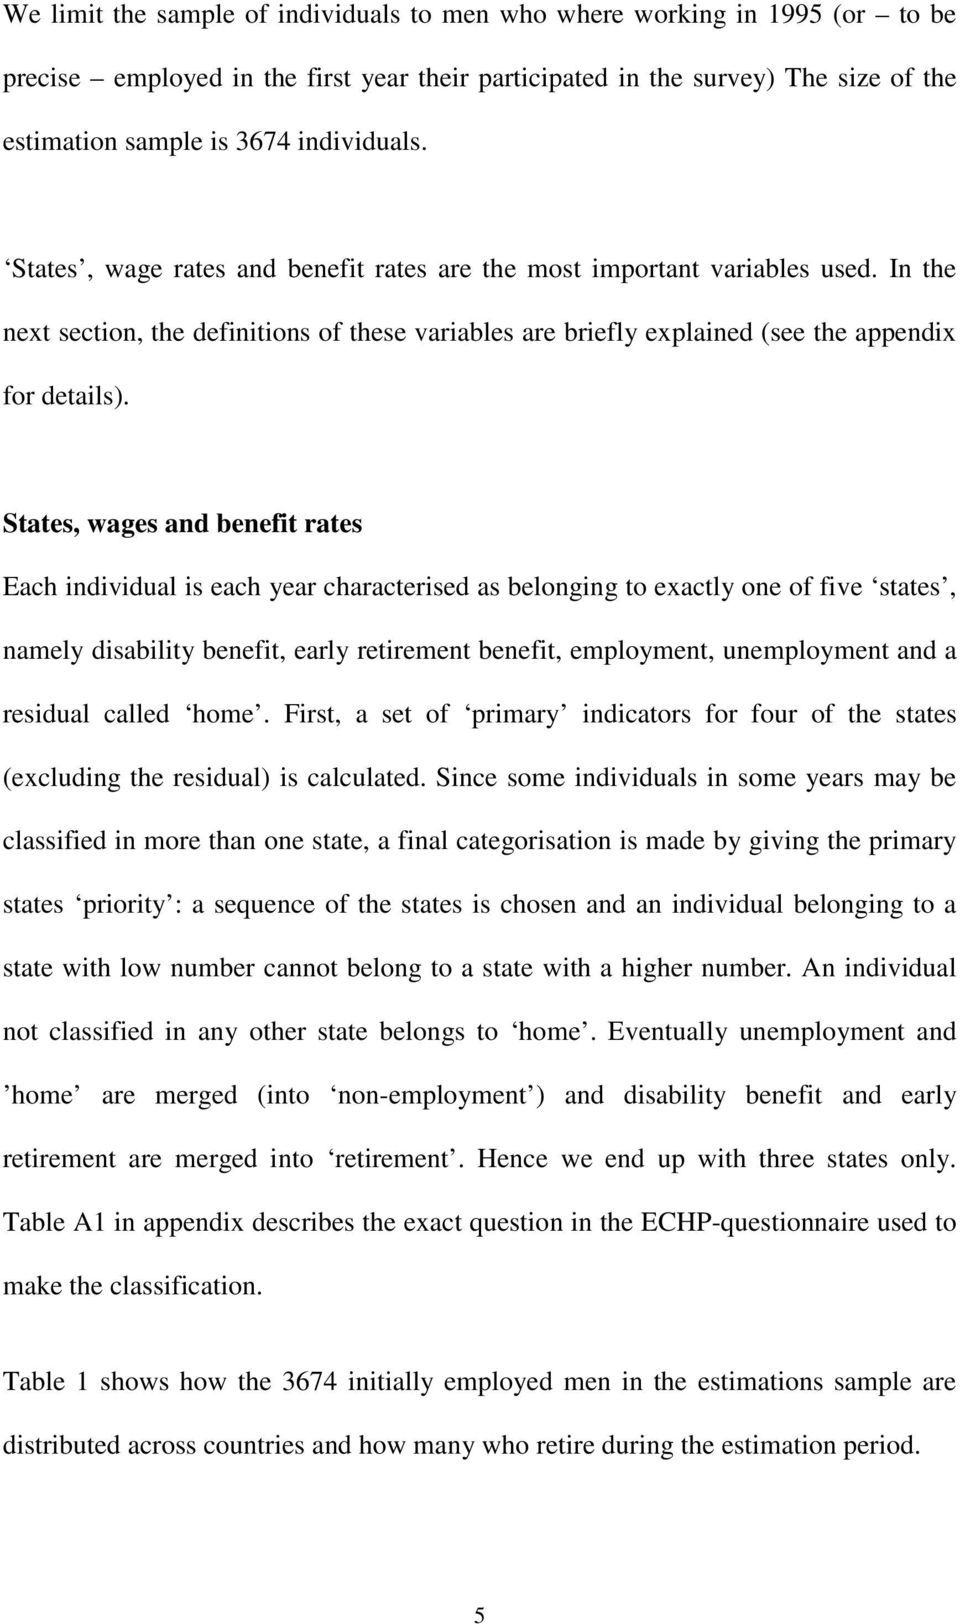 States, wages and benefit rates Each individual is each year characterised as belonging to exactly one of five states, namely disability benefit, early retirement benefit, employment, unemployment